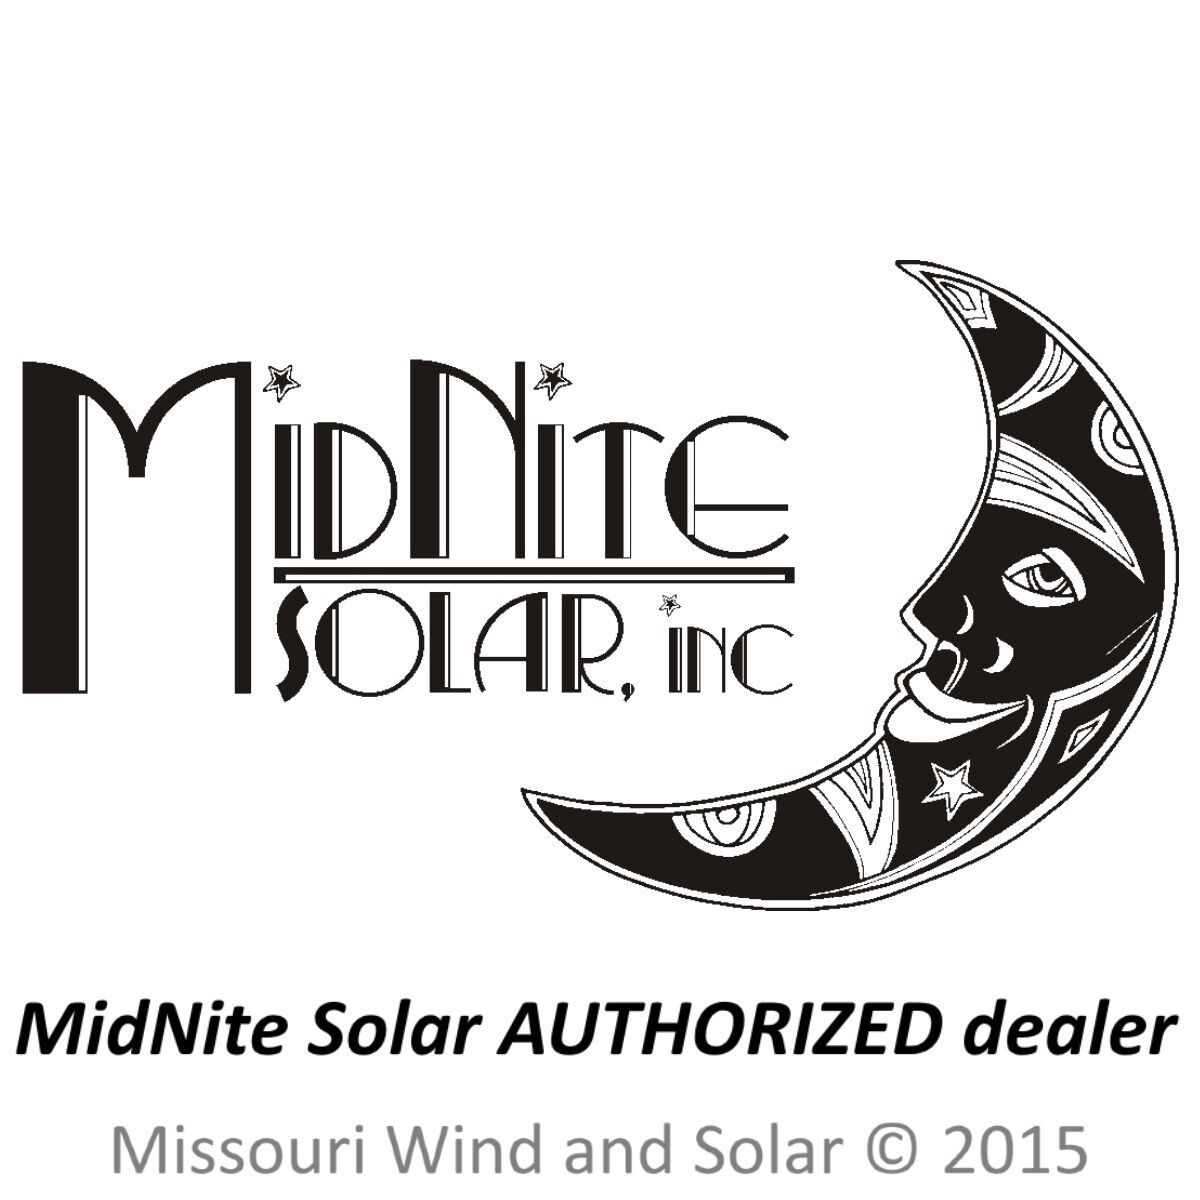 midnite solar classic 250 mppt charge controller regulator 250v 63a made in usa